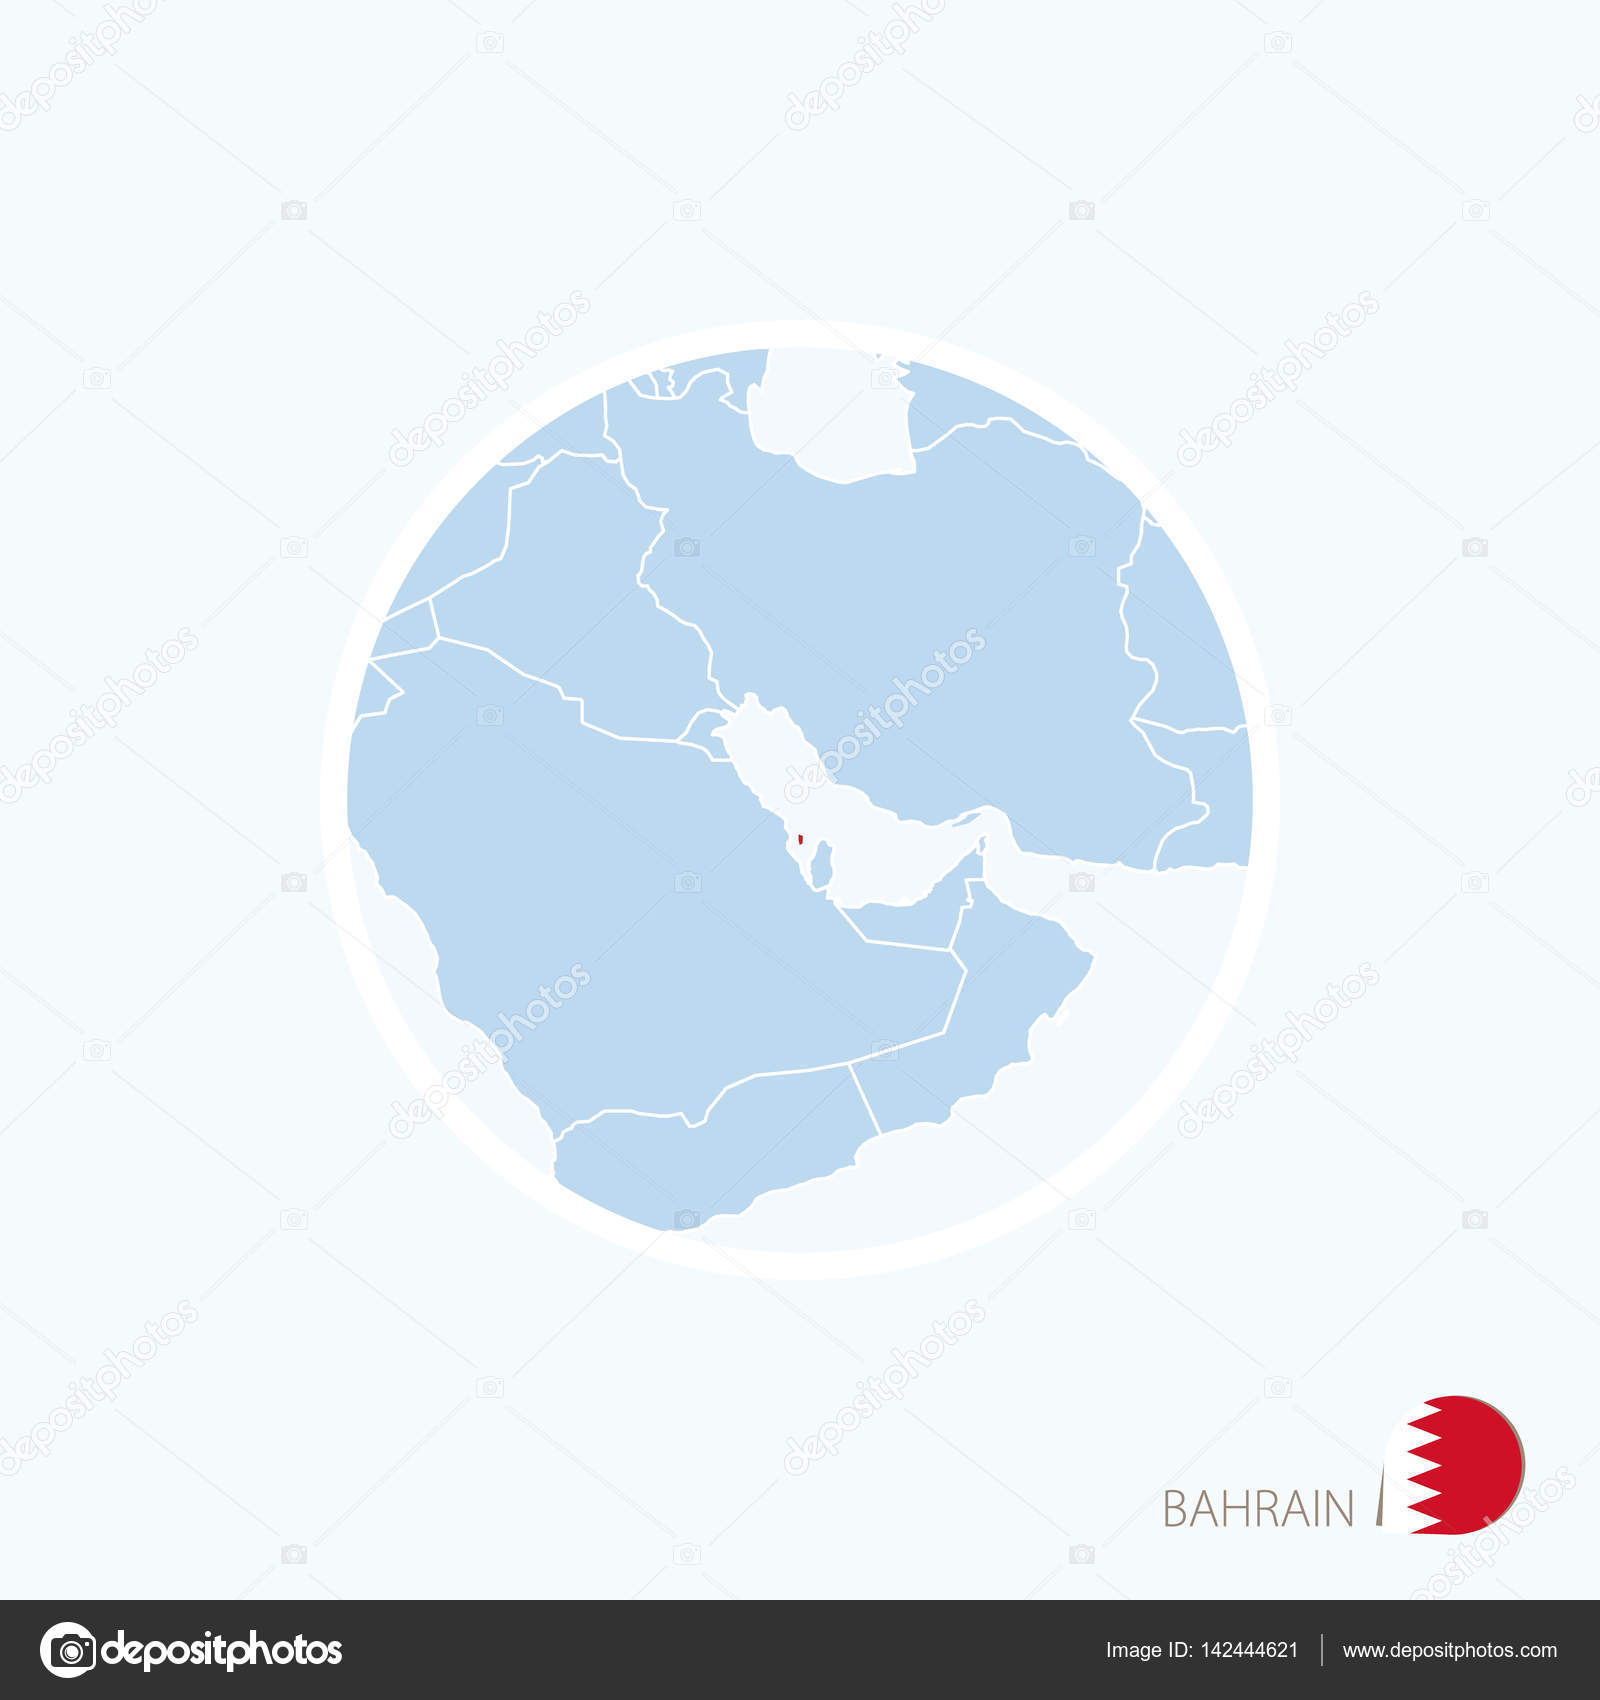 Map icon of Bahrain. Blue map of Middle East with highlighted ... Icon Of Bahrain Map on map of oman, map of western europe, map of sinai peninsula, map of mediterranean countries, map of persian gulf, map of cote d'ivoire, map of italy, map of croatia, map of eritrea, map of greece, map of qatar, map of djibouti, map of kuwait, map of philippines, map of australia, map of czech republic, map saudi arabia, map of western sahara, map of sri lanka, map of middle east,